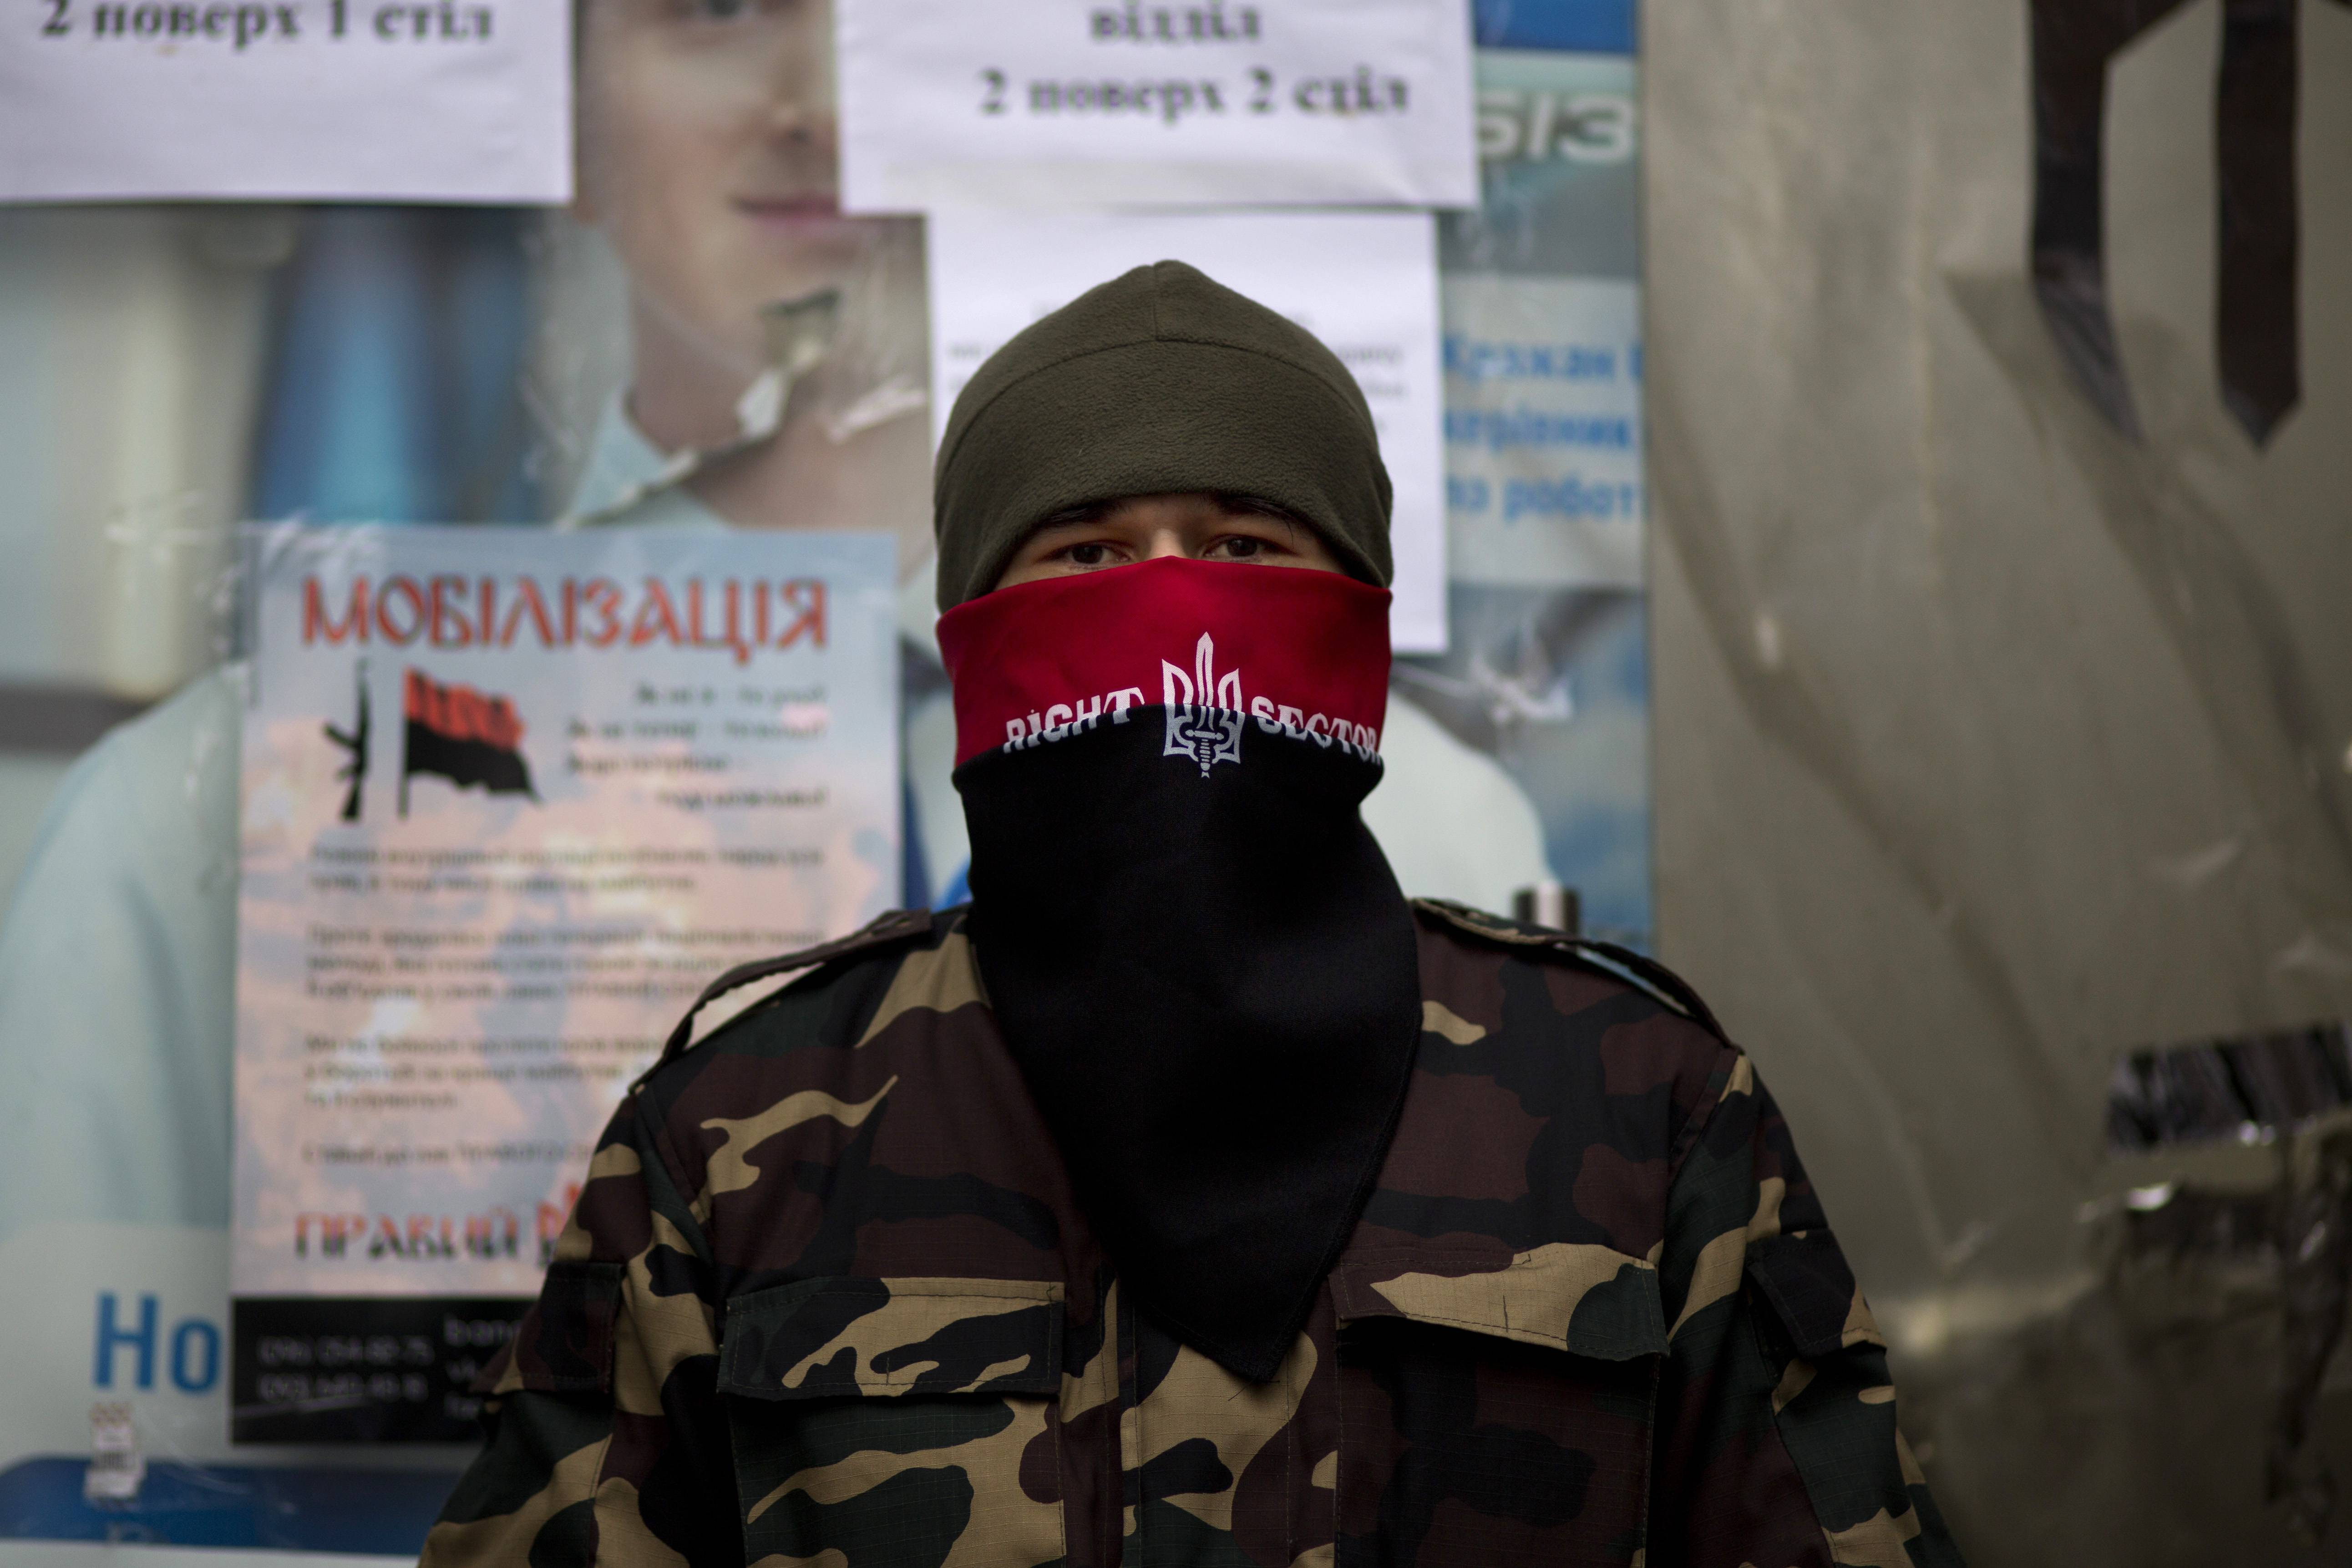 Several weeks after mass protests ousted Russian-leaning President Viktor Yanukovych, hundreds of members of the radical ultranationalist group, the Right Sector, continue to patrol central streets and occupy buildings in Kiev.